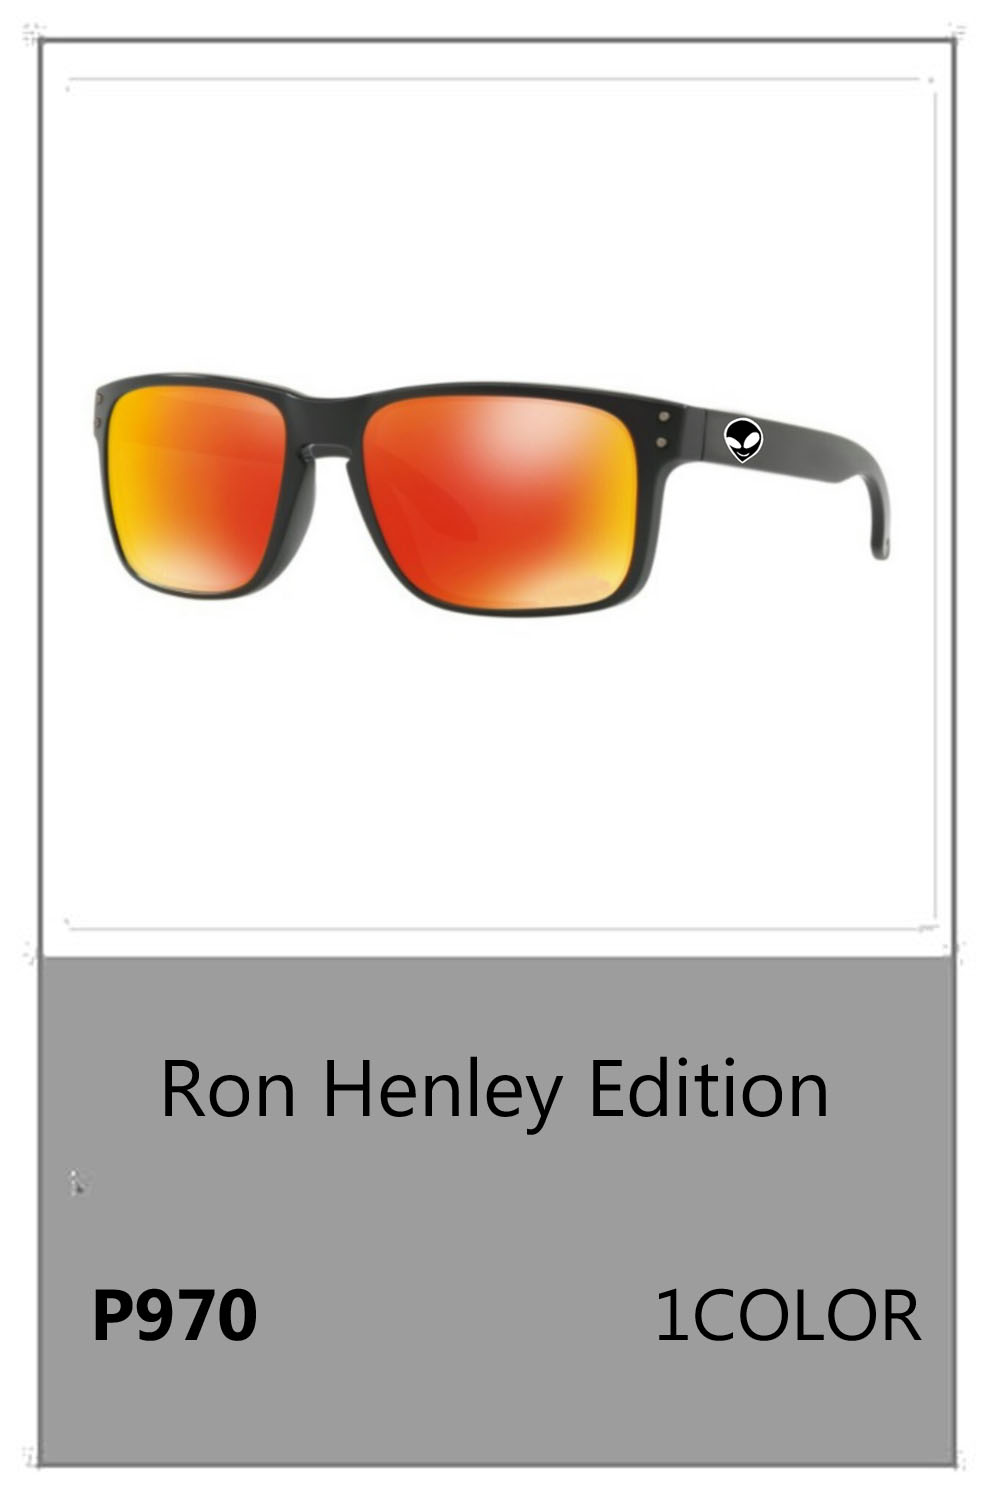 Ron Henley Edition